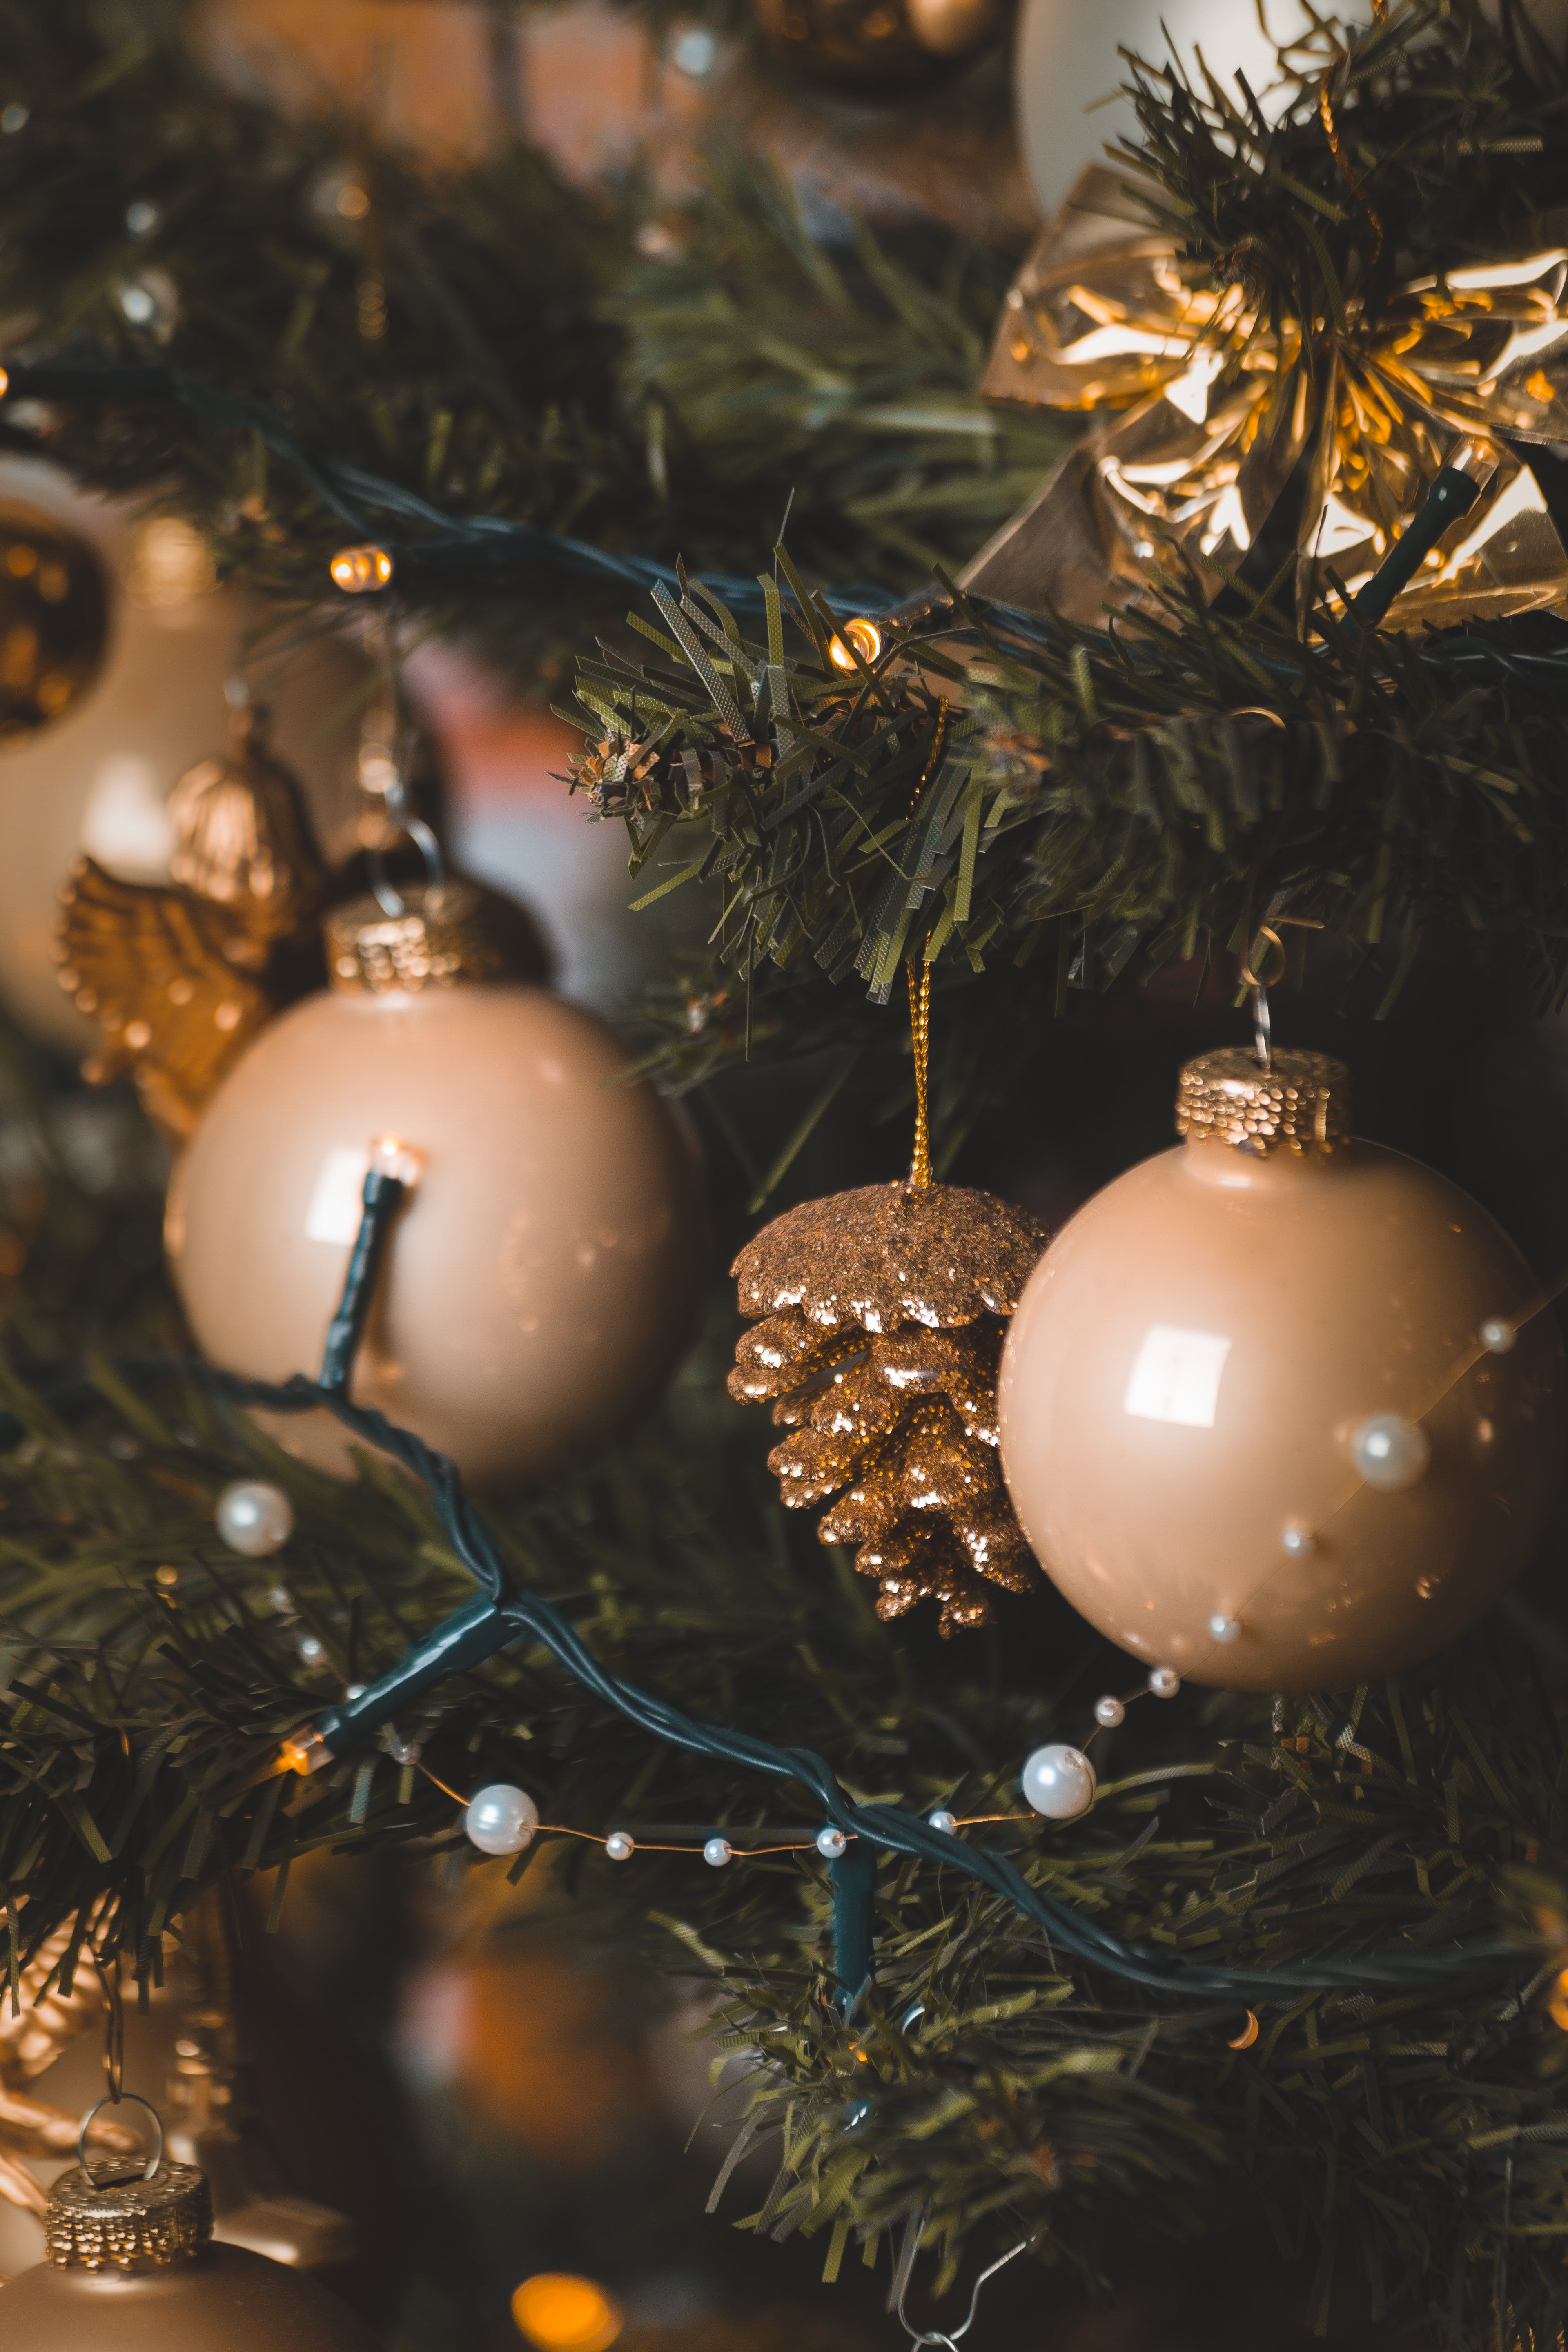 Beige Baubles and String Lights on Christmas Tree